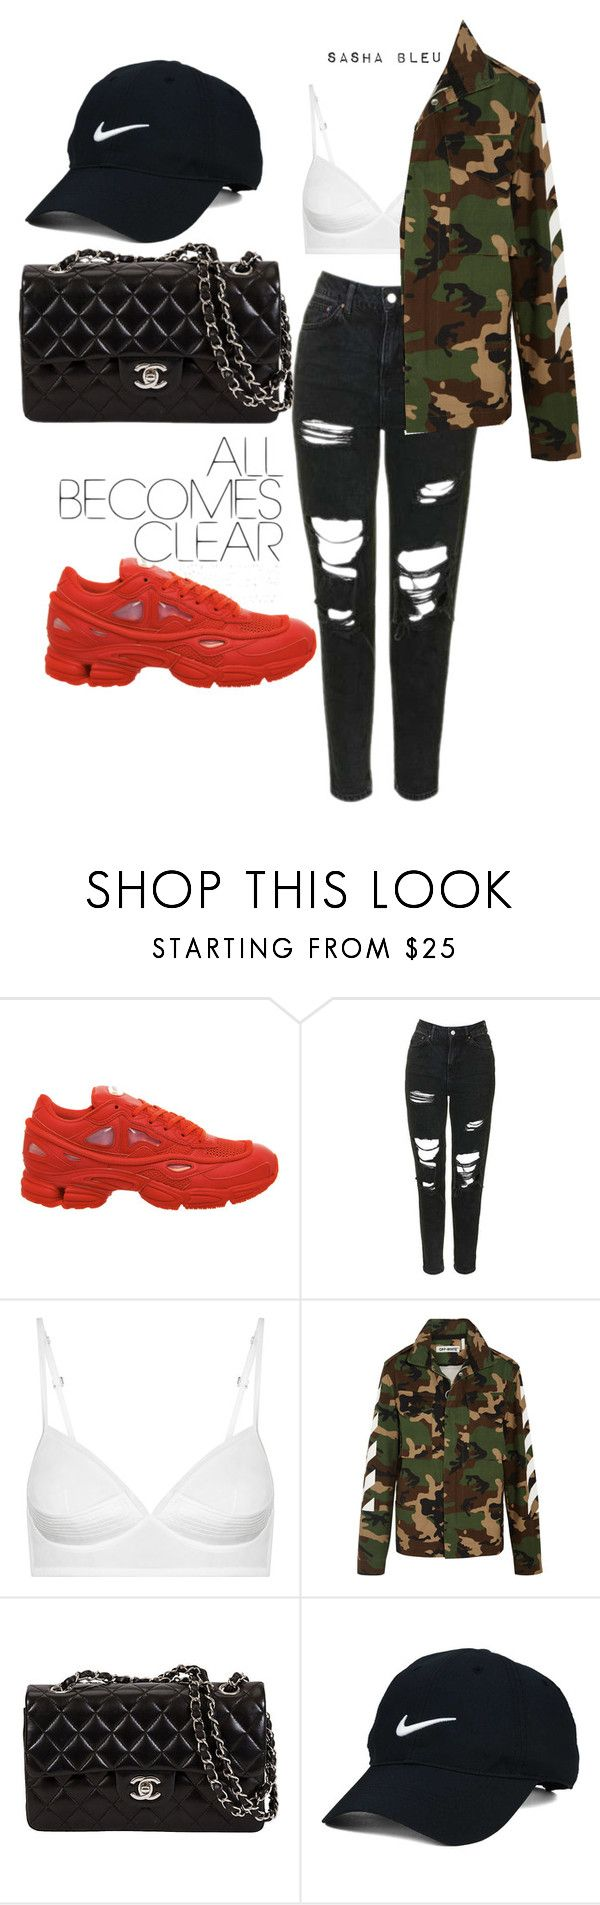 """""""Don't need the Tea baby I got the juice 😏"""" by sashableu ❤ liked on Polyvore featuring Topshop, Off-White and Nike Golf"""